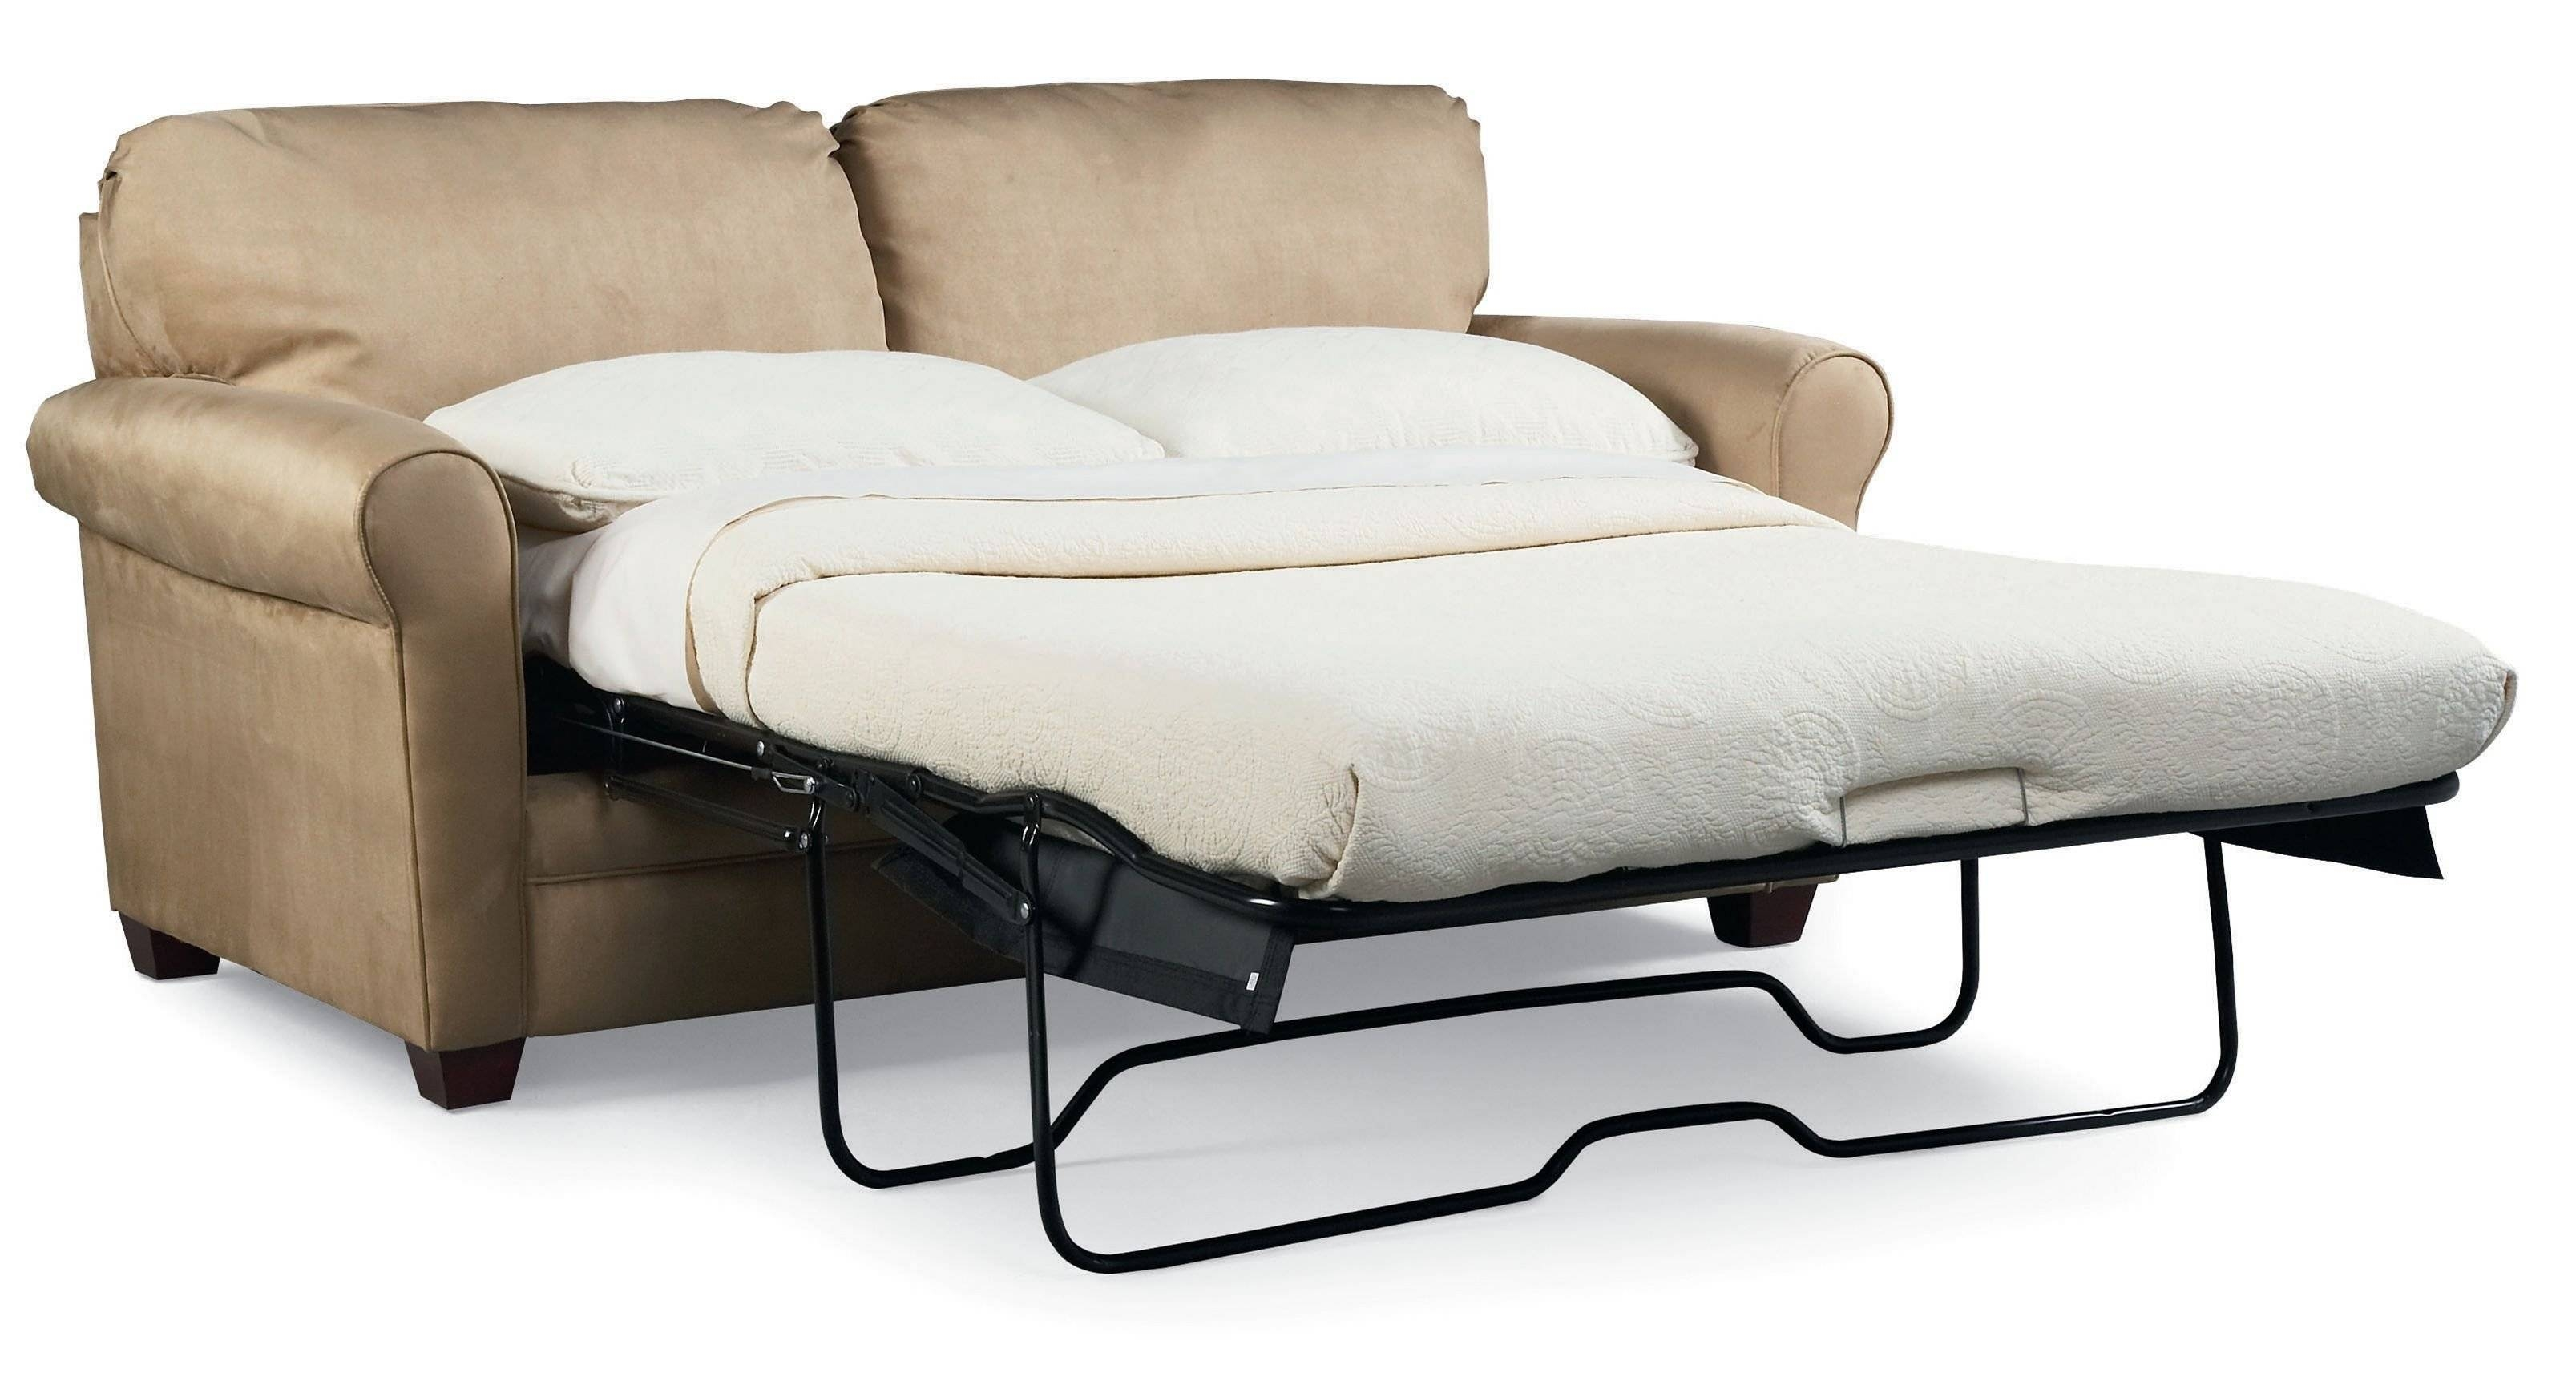 Sleeper Sofas Queen Size - Ansugallery with Queen Convertible Sofas (Image 13 of 15)